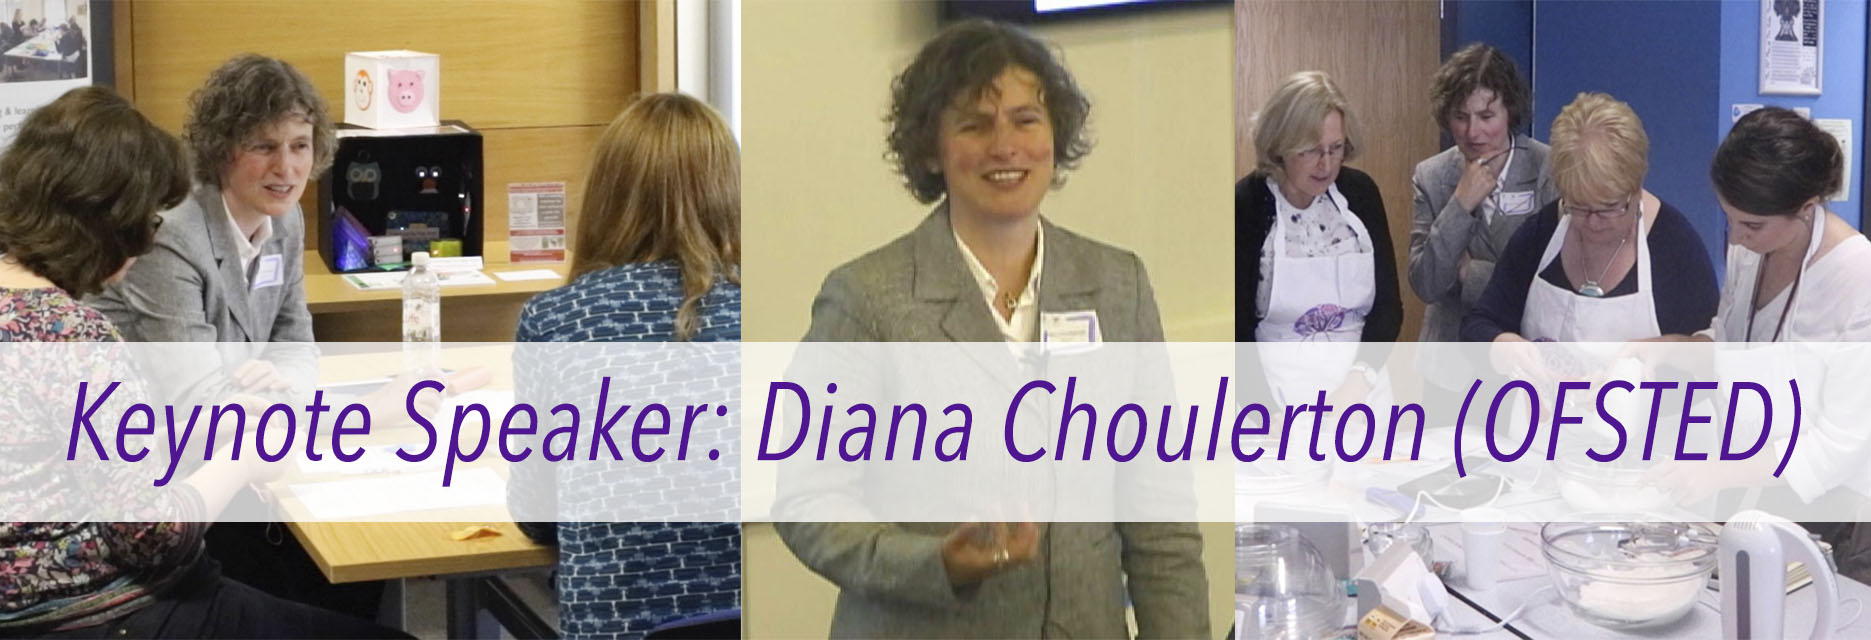 Diana Choulerton - OFSTED